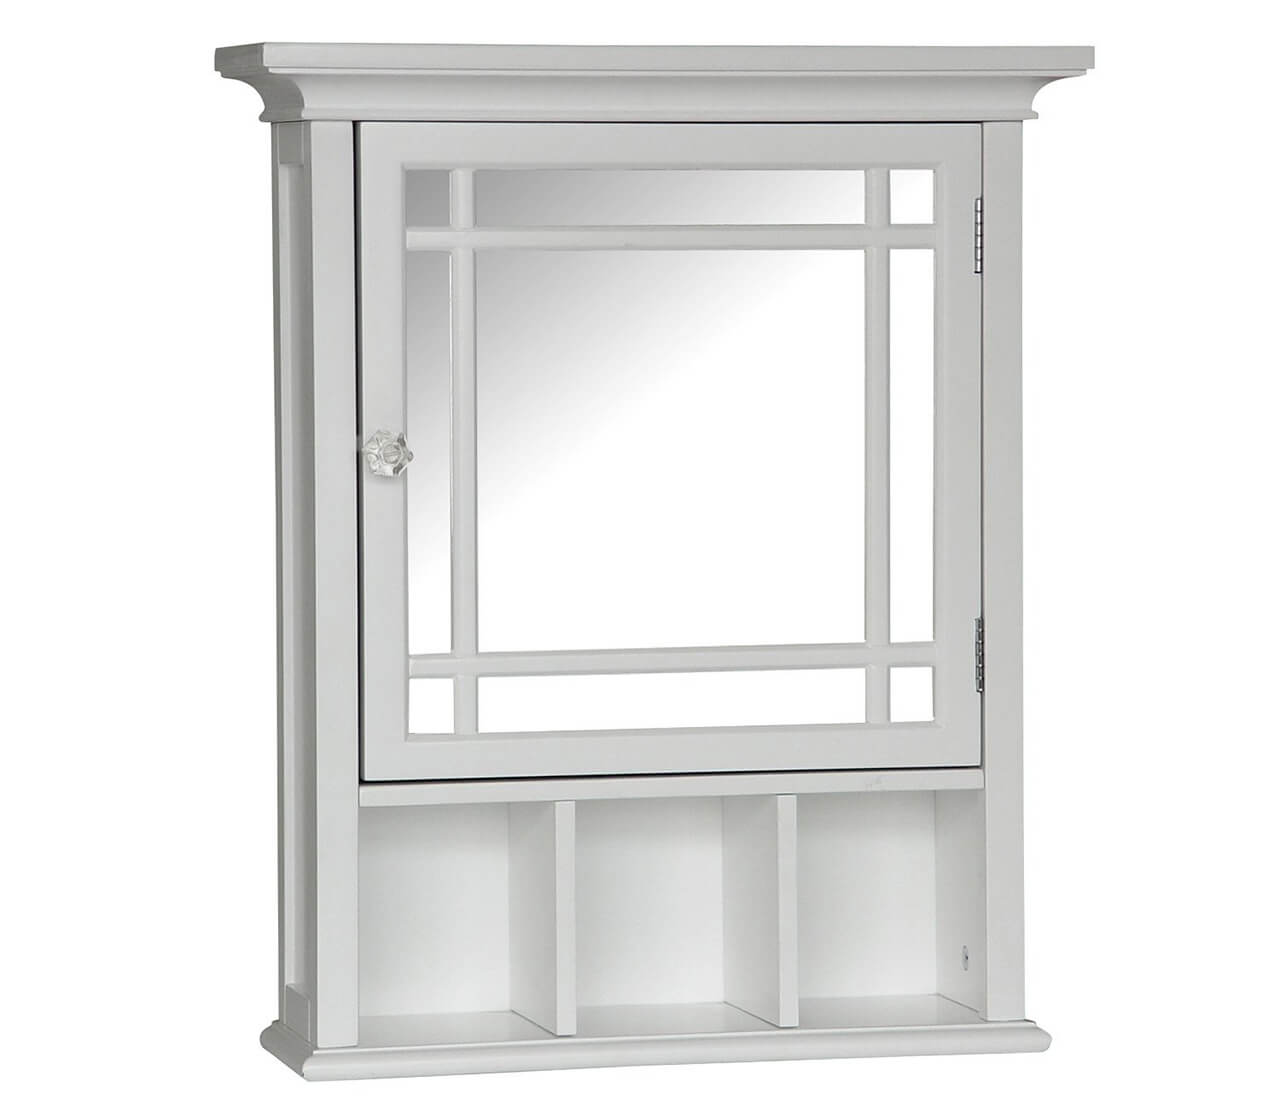 Elegant Home Fashions Neal Collection Mirrored Medicine Cabinet